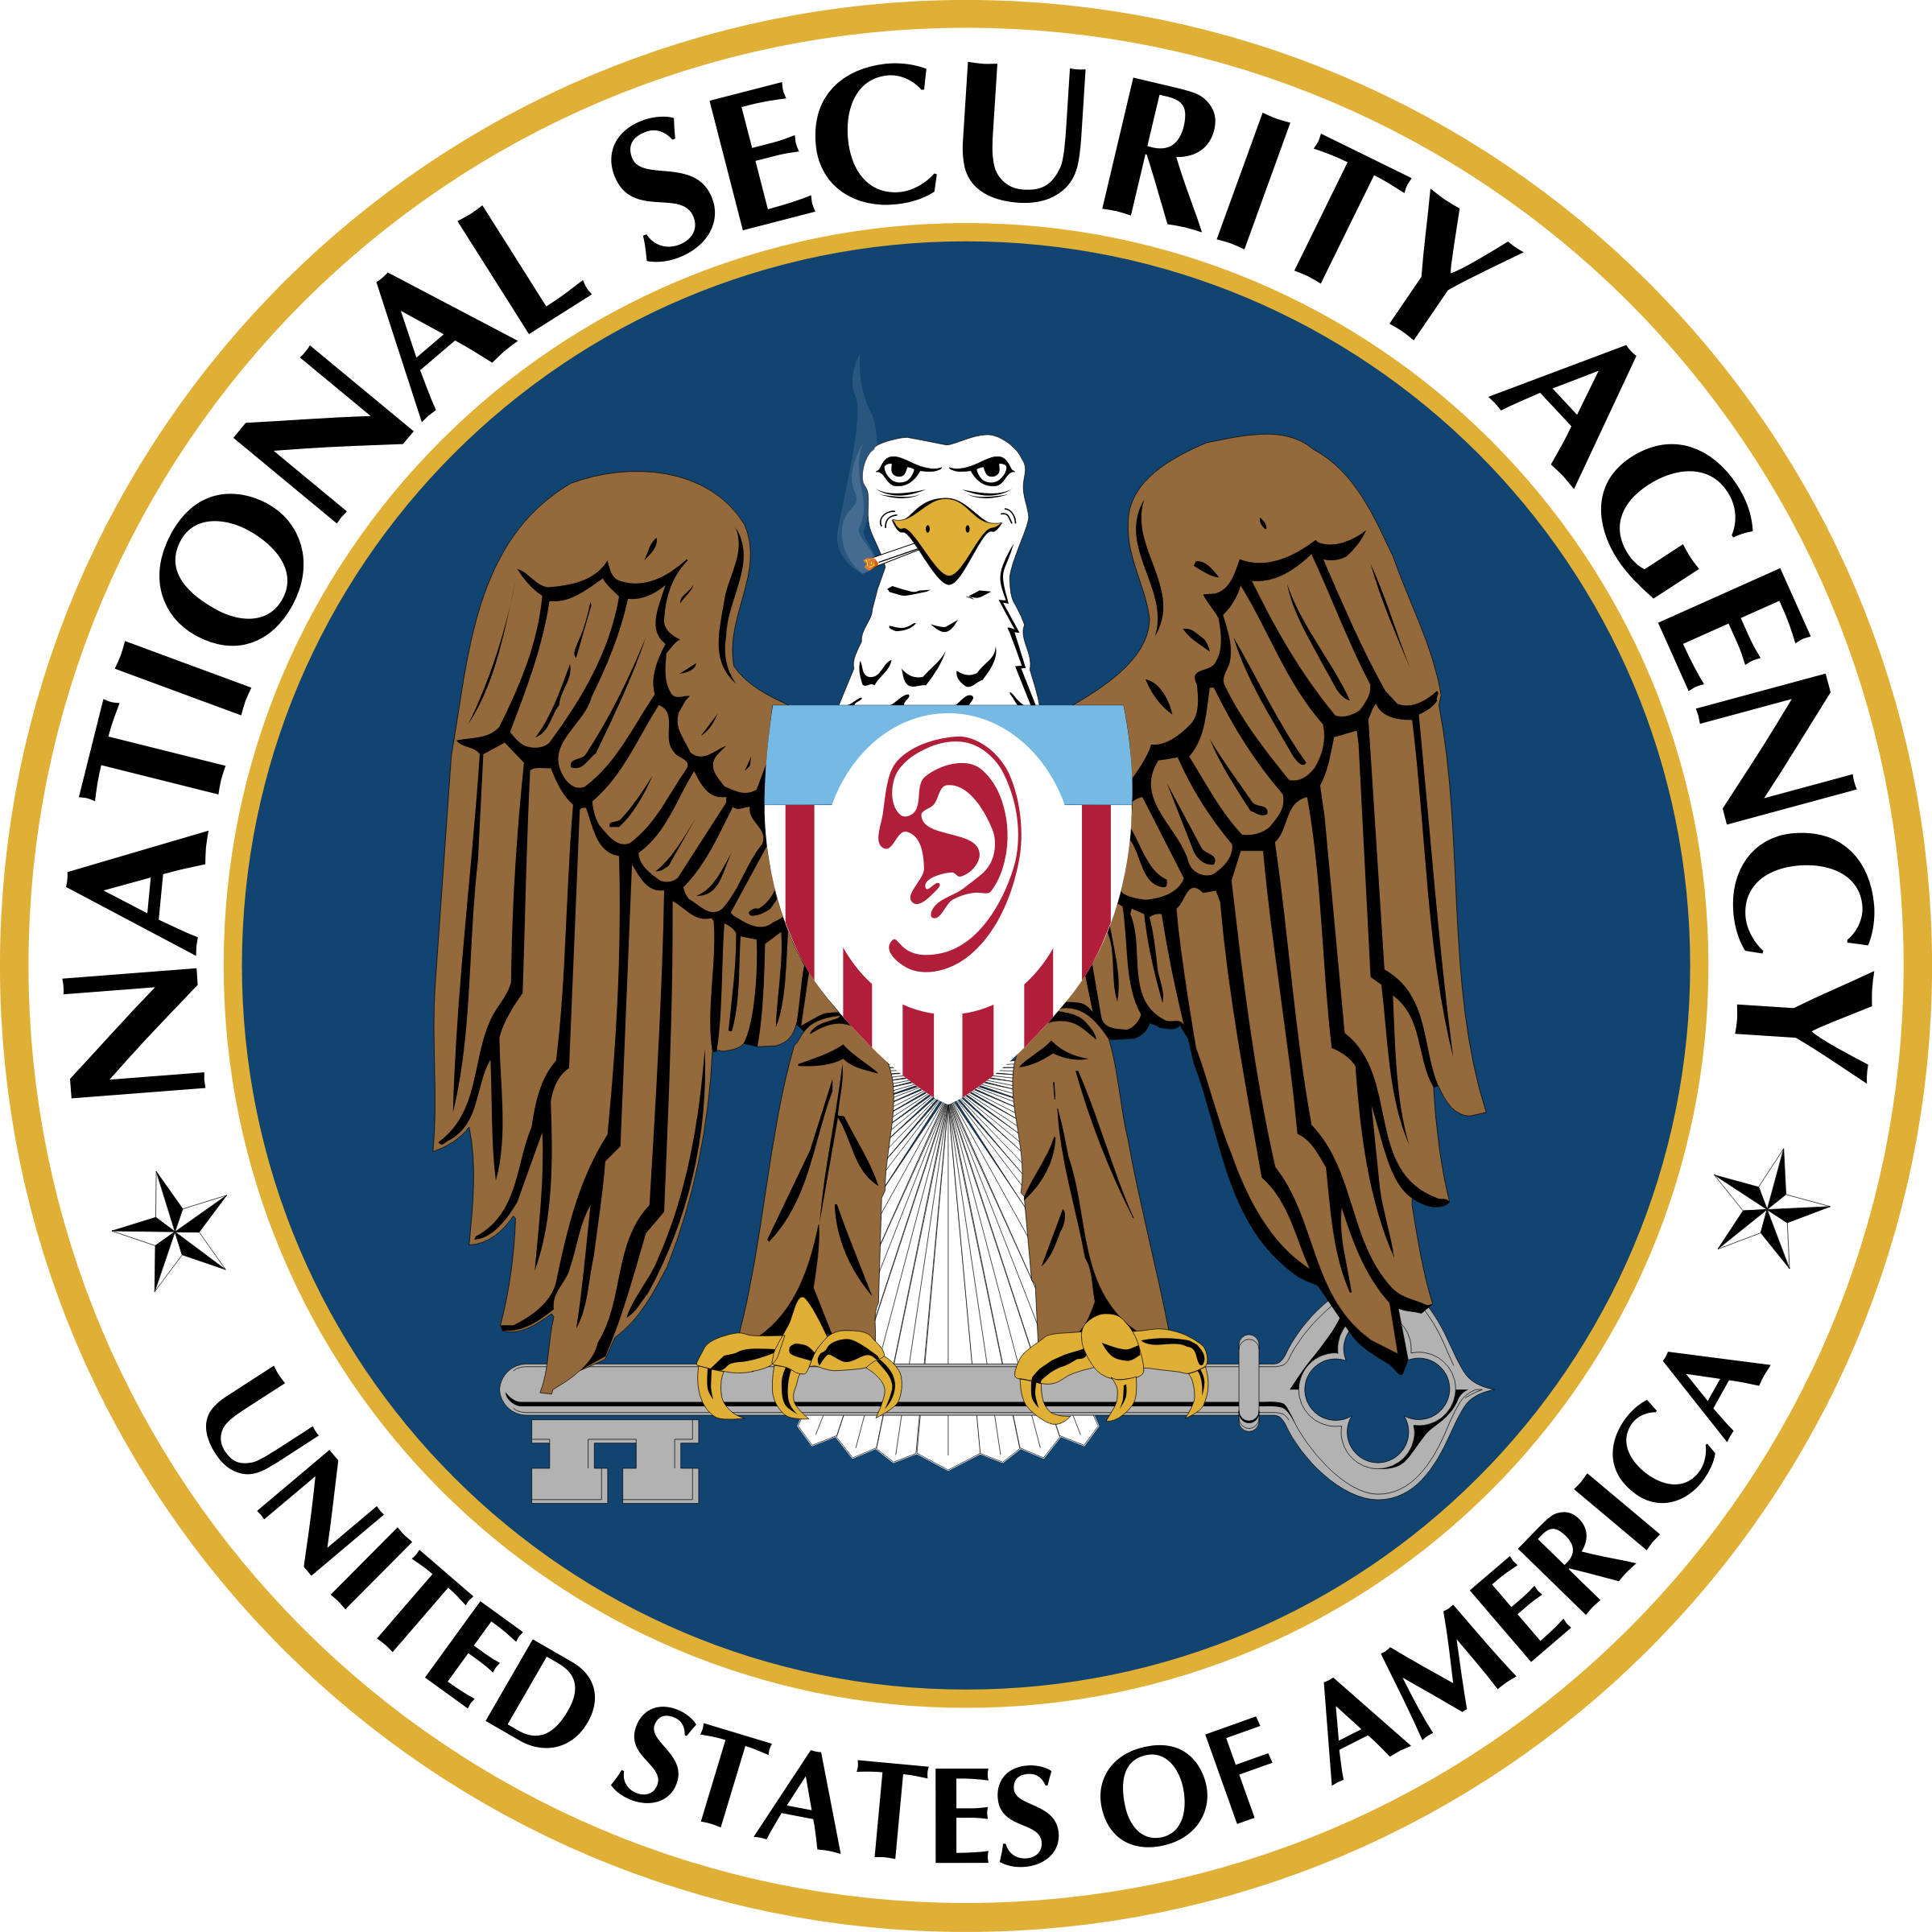 National Security Agency logo by raphaelb